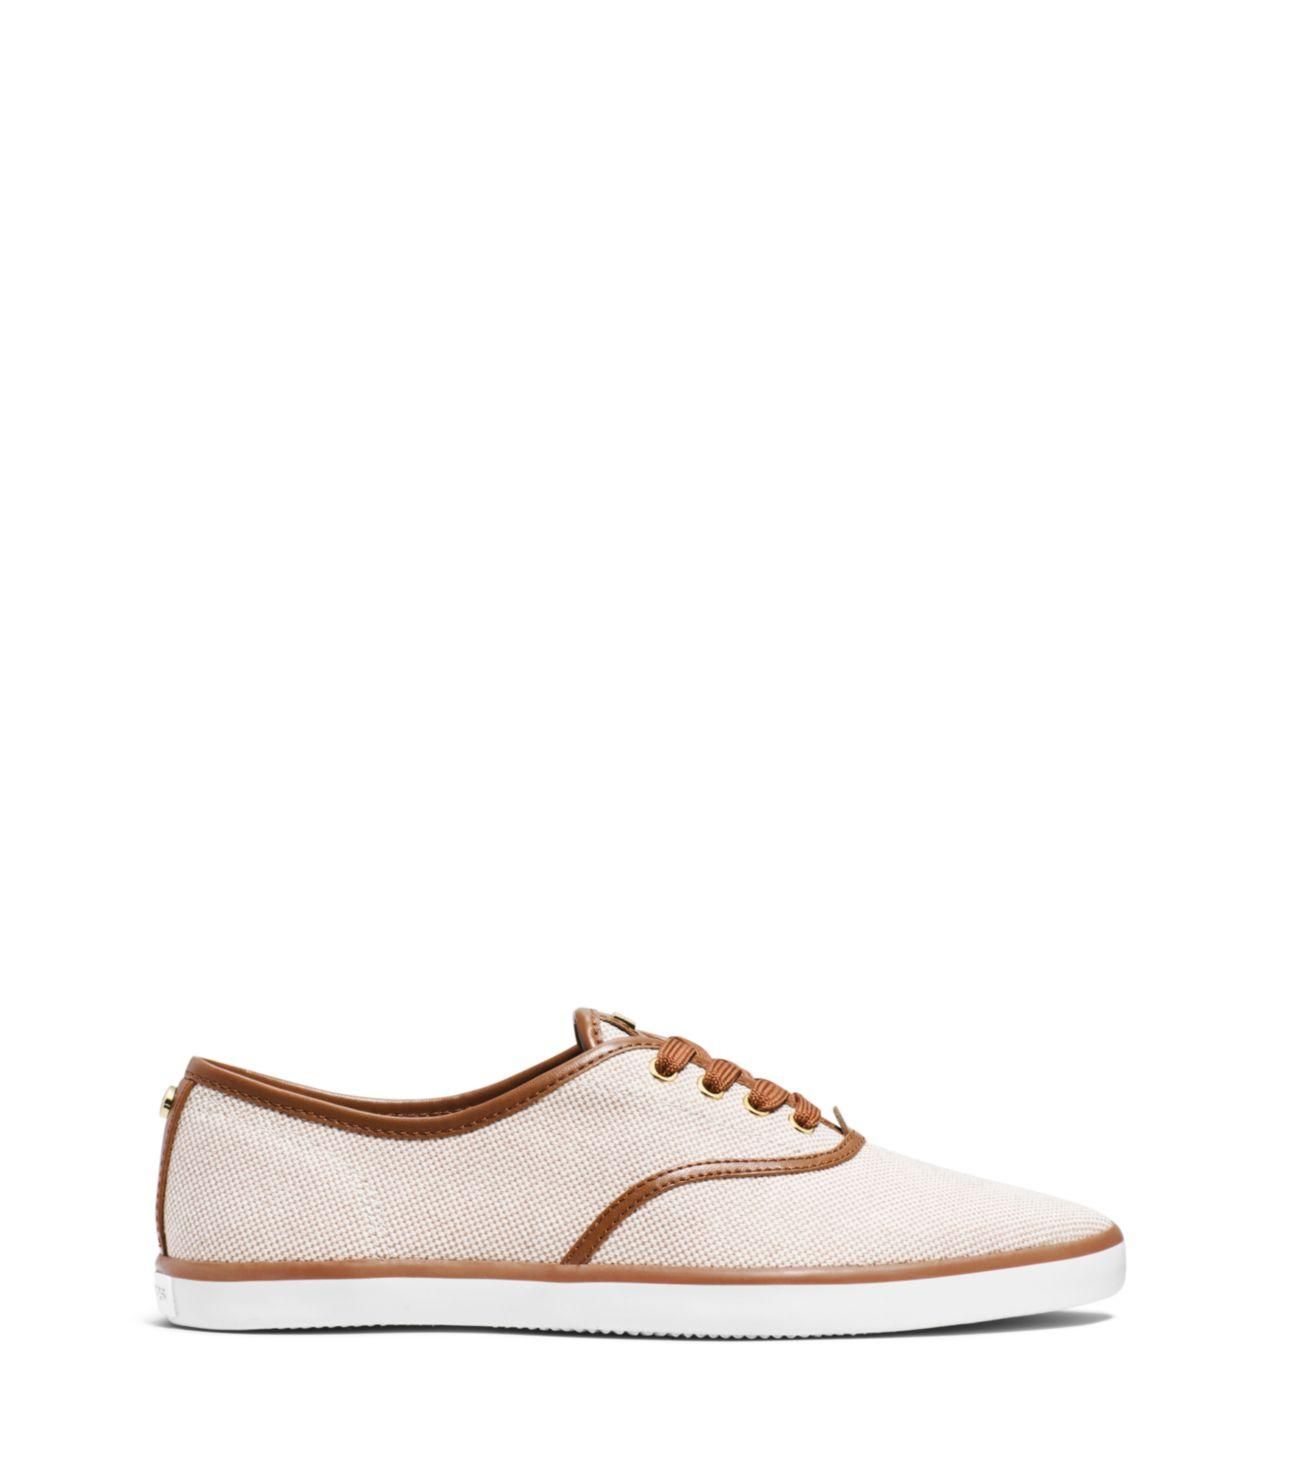 Michael Kors Brennan Canvas And Leather Sneaker in Ecru (Natural)